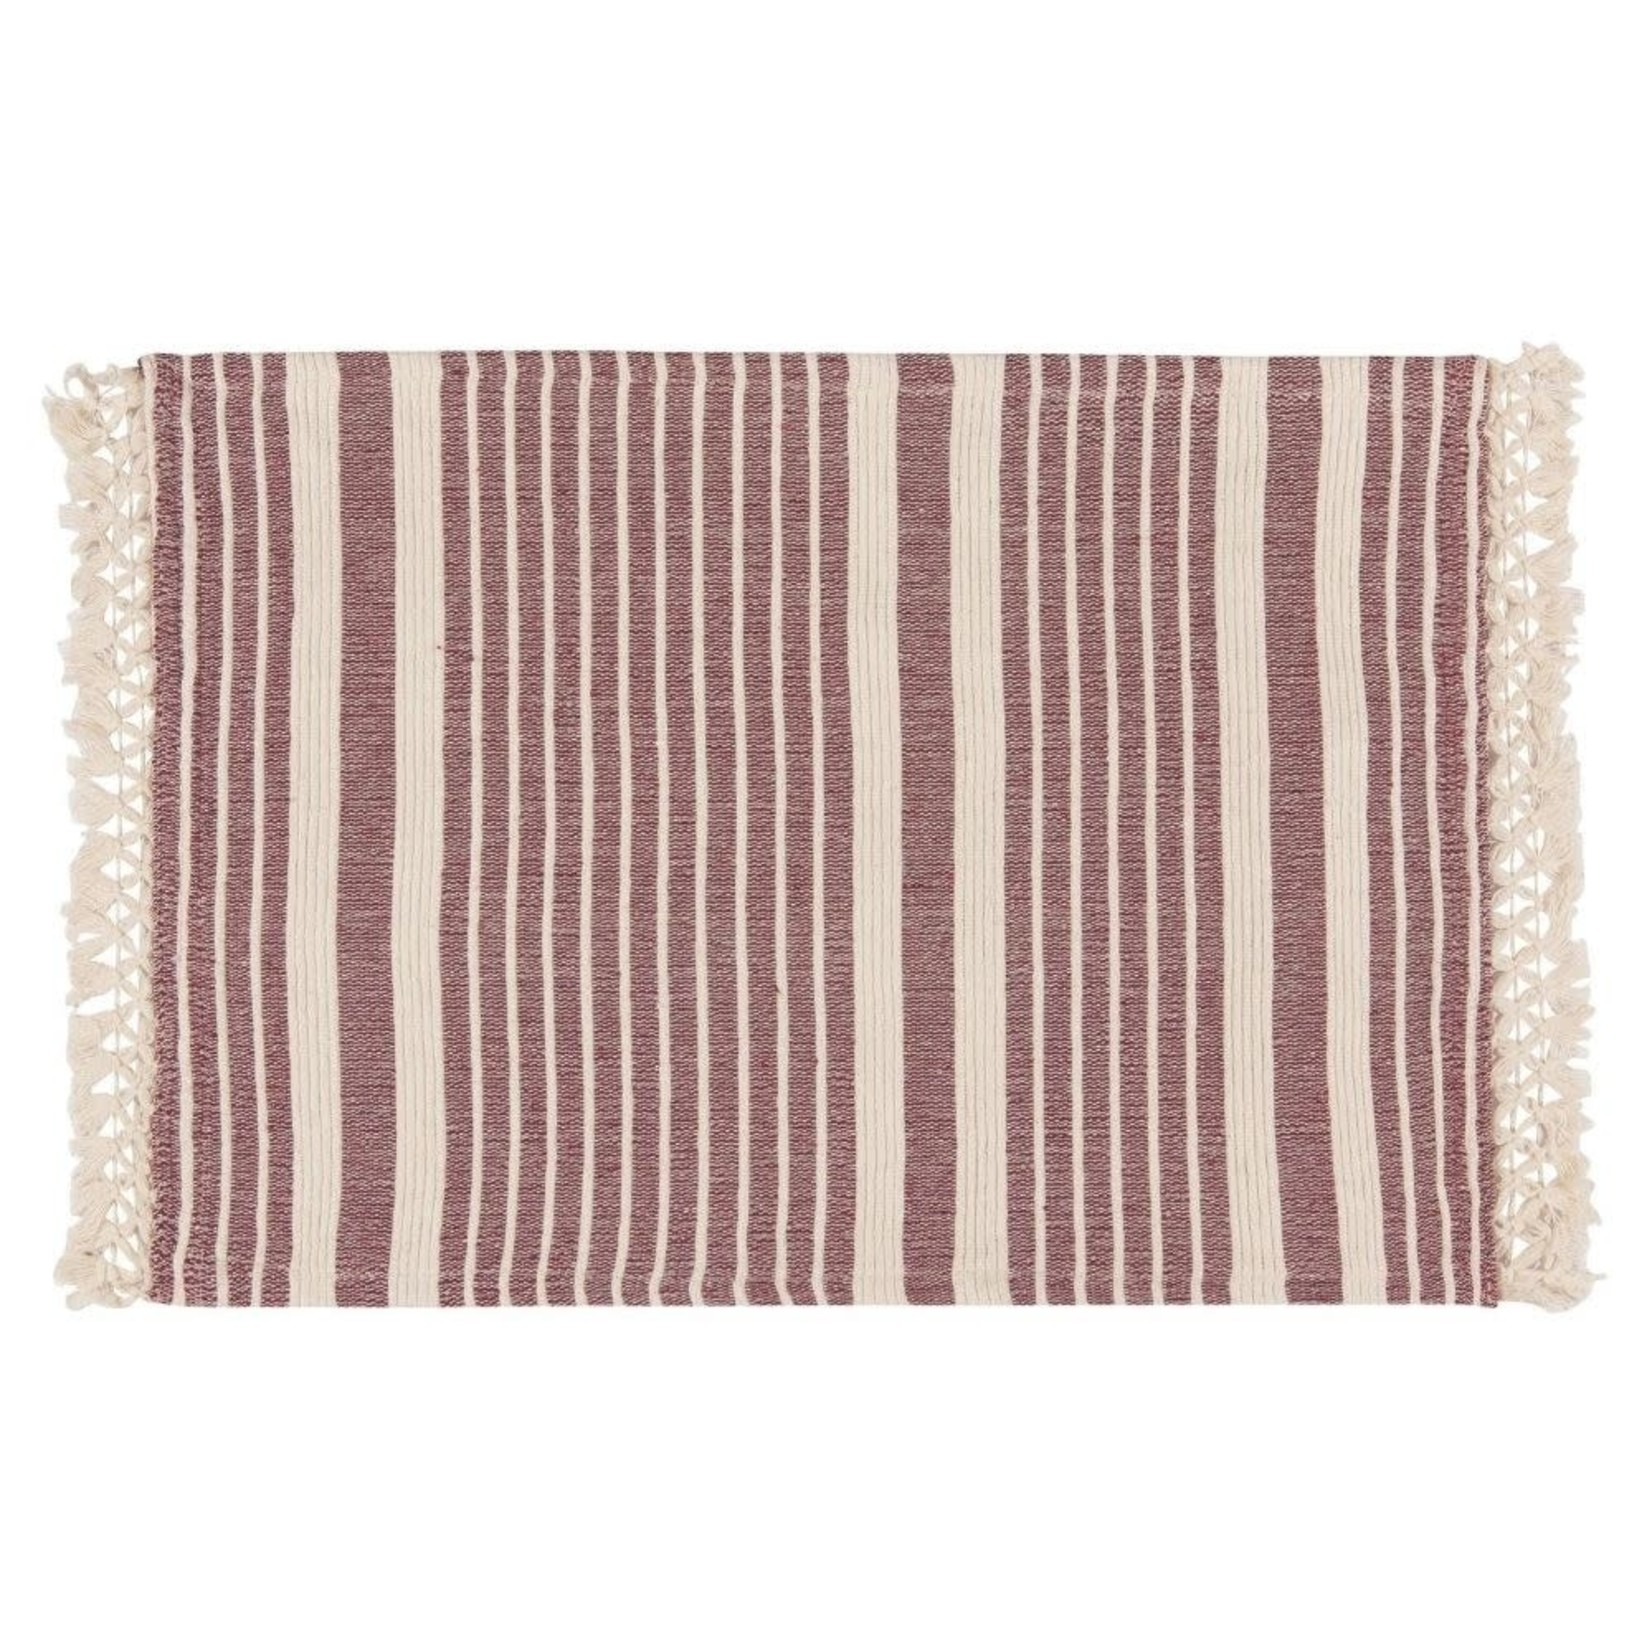 Now Designs Piper Heirloom Placemats Set of 4 in Wine